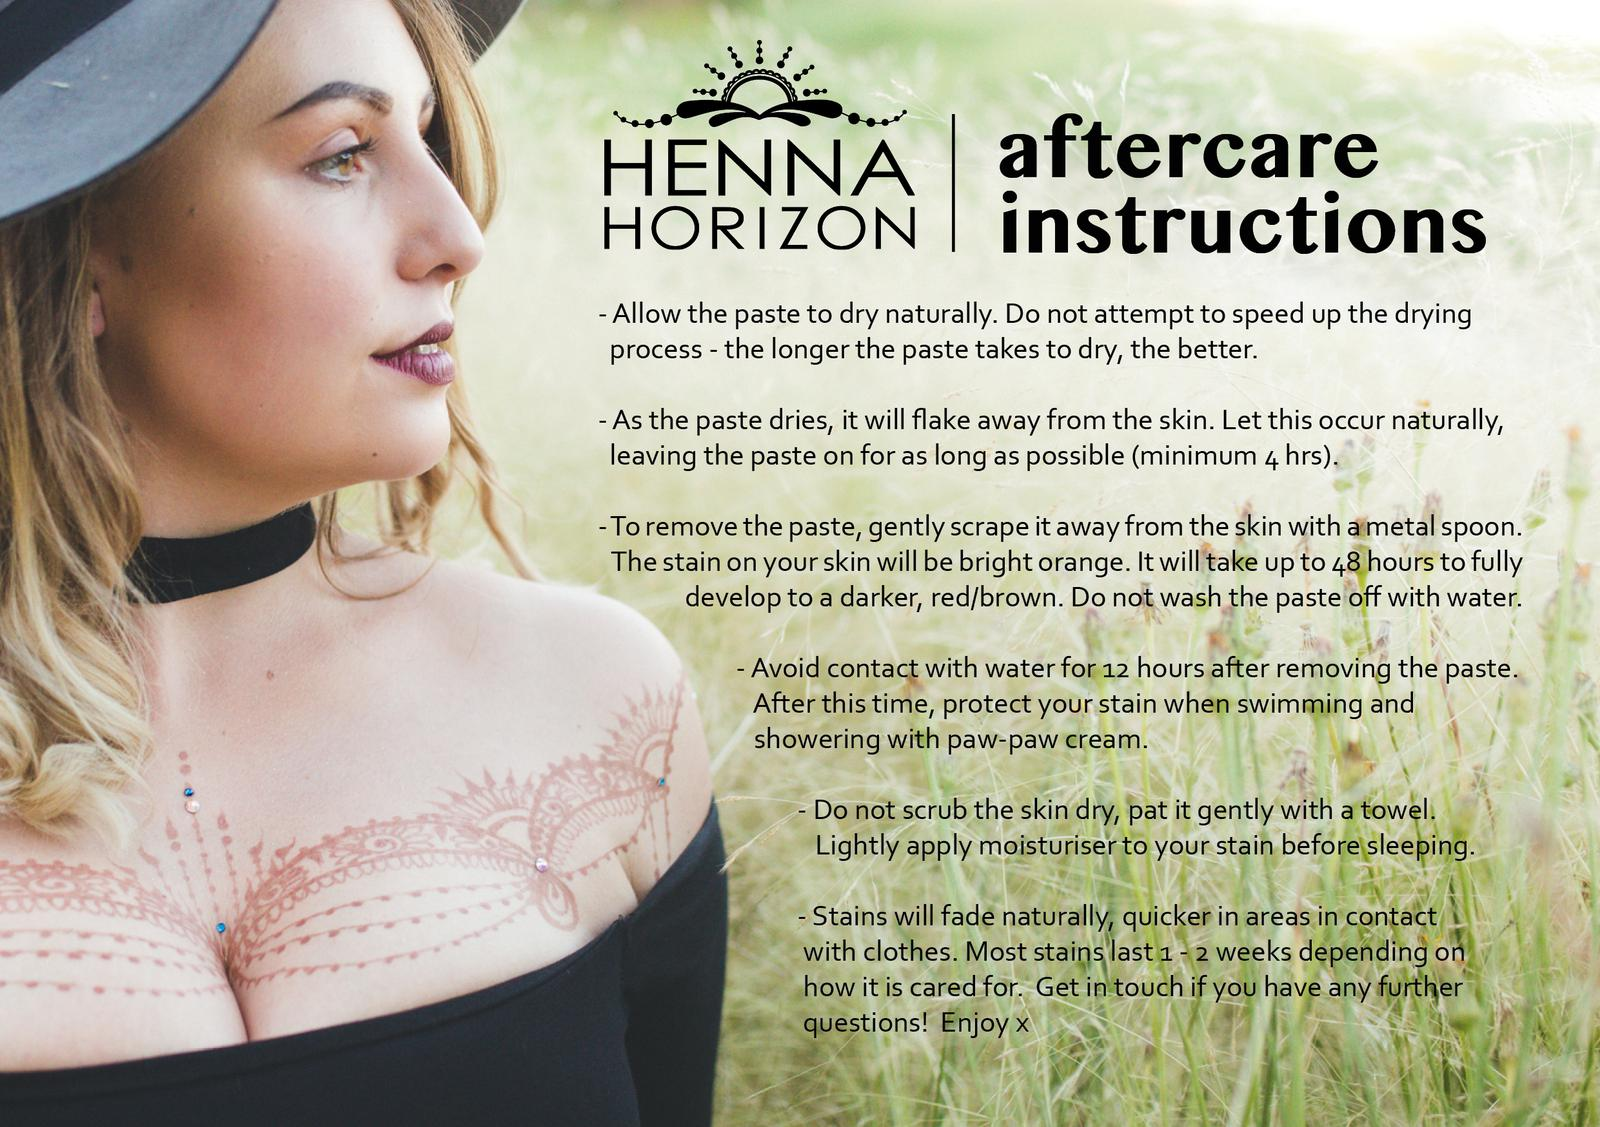 Caring for your Henna